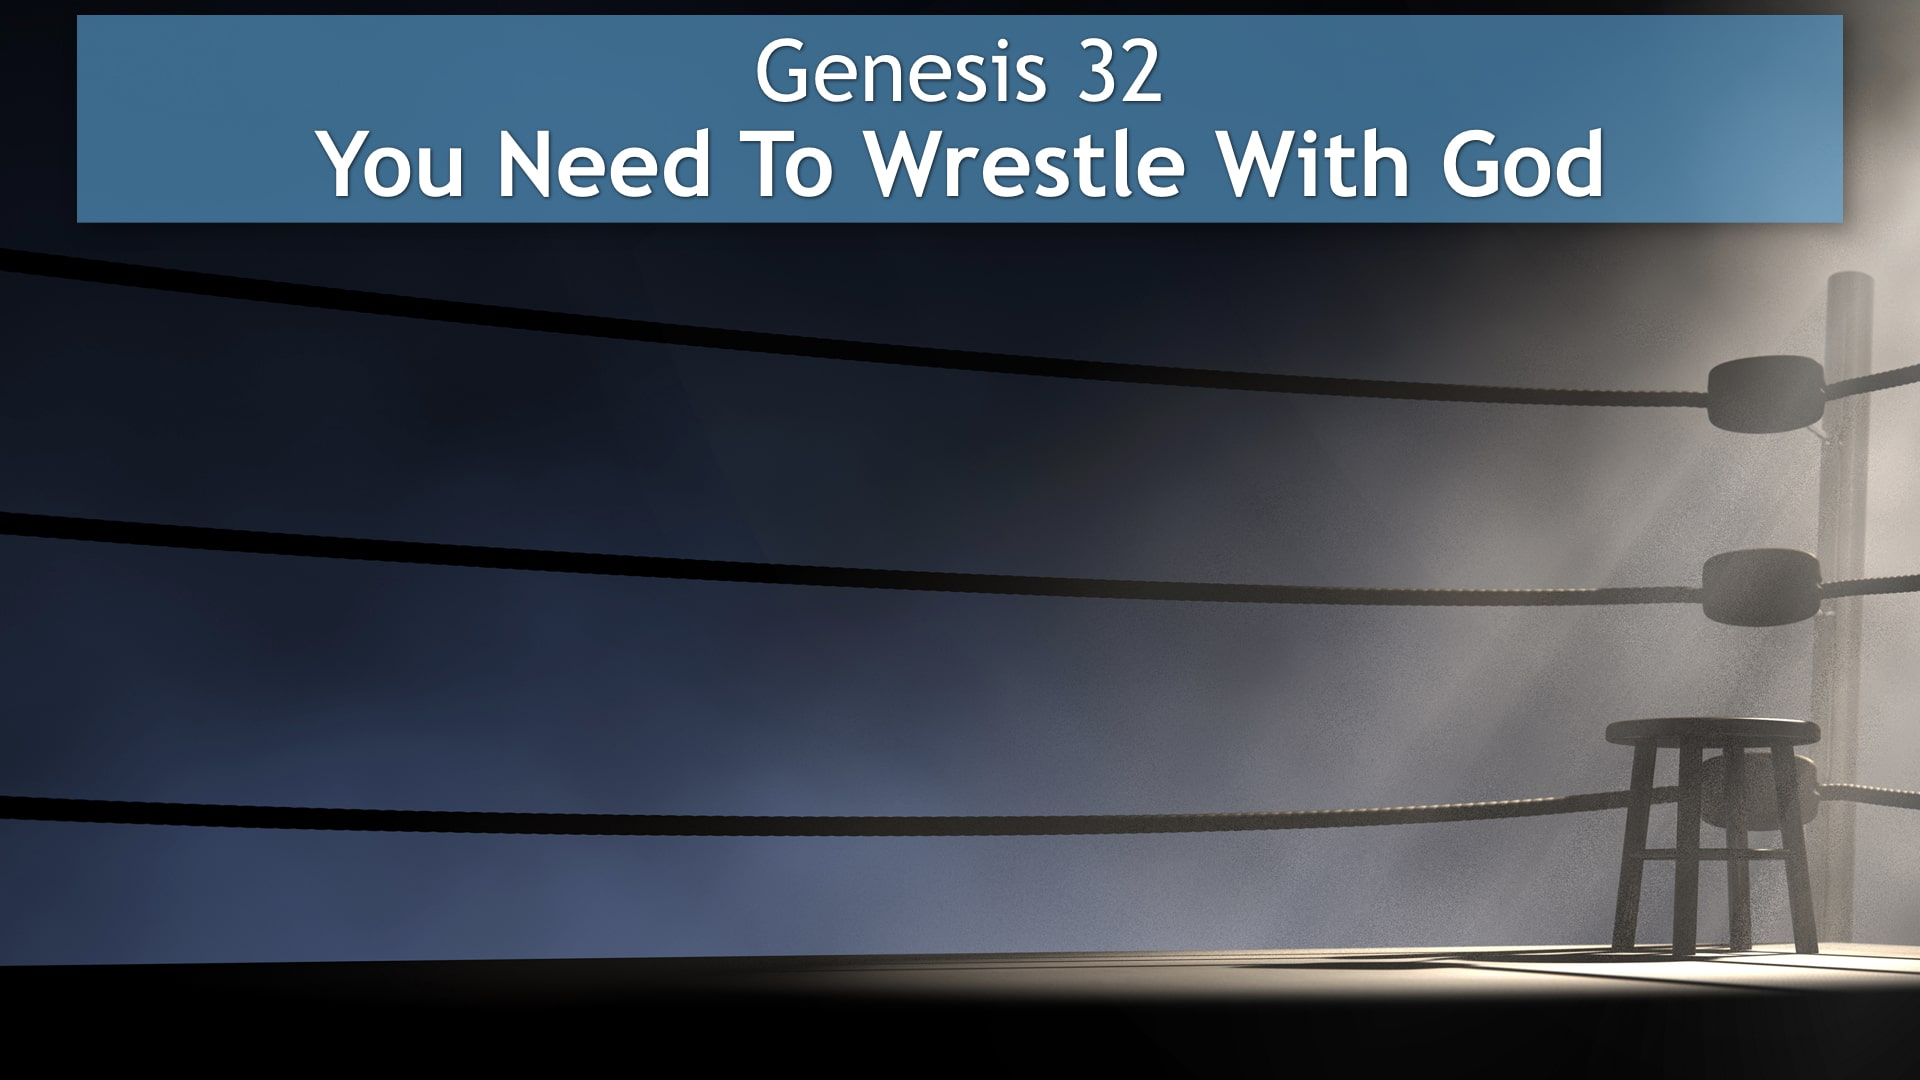 Genesis 32, You Need To Wrestle With God